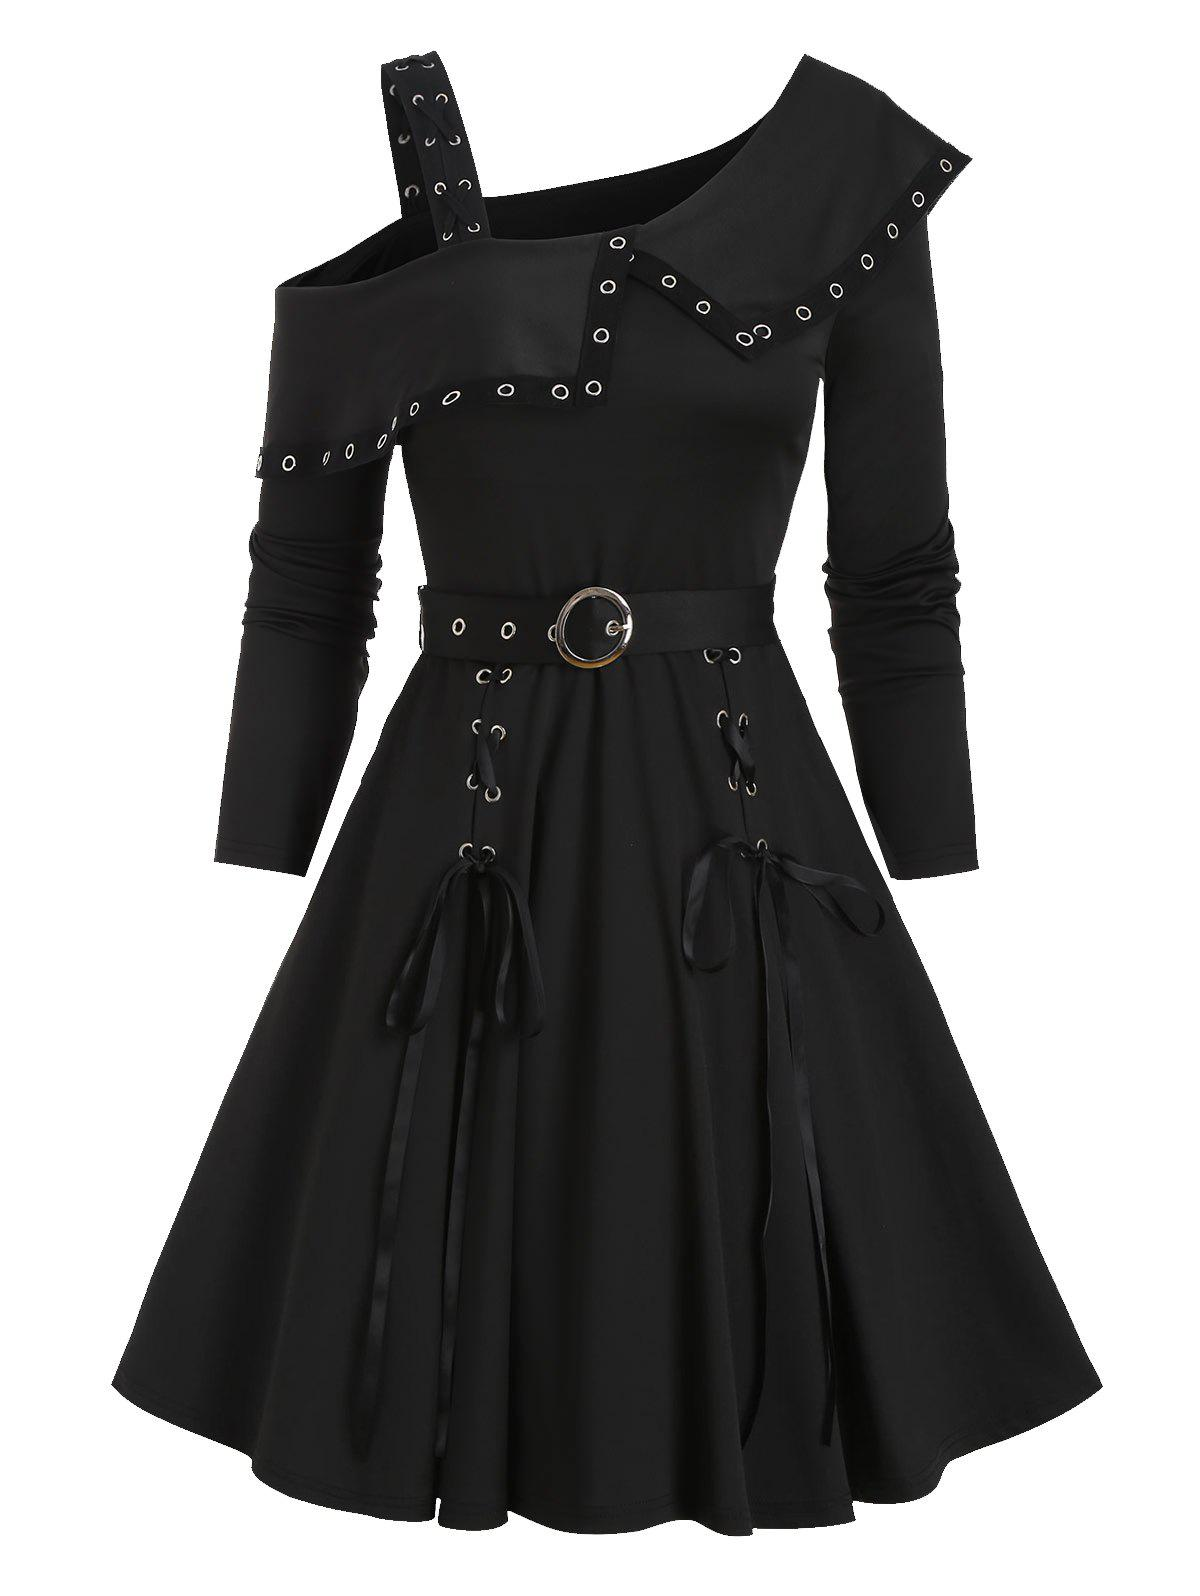 Grommet Detail Lace-up Belted Dress - BLACK XL